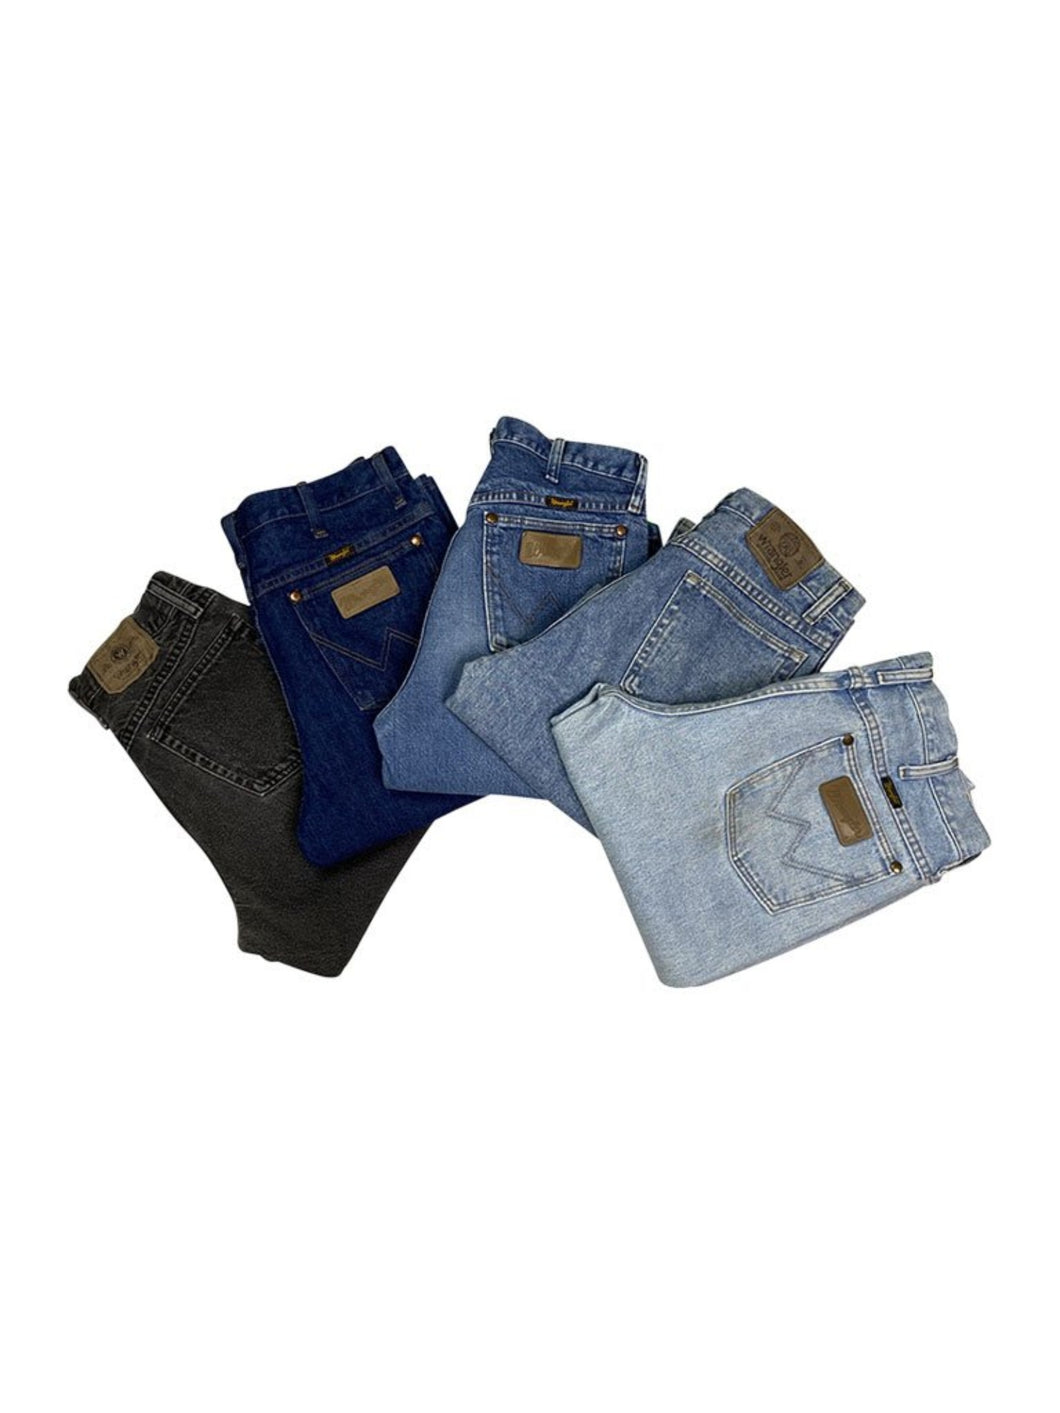 Vintage Wrangler Leather Patched Jeans Bundle